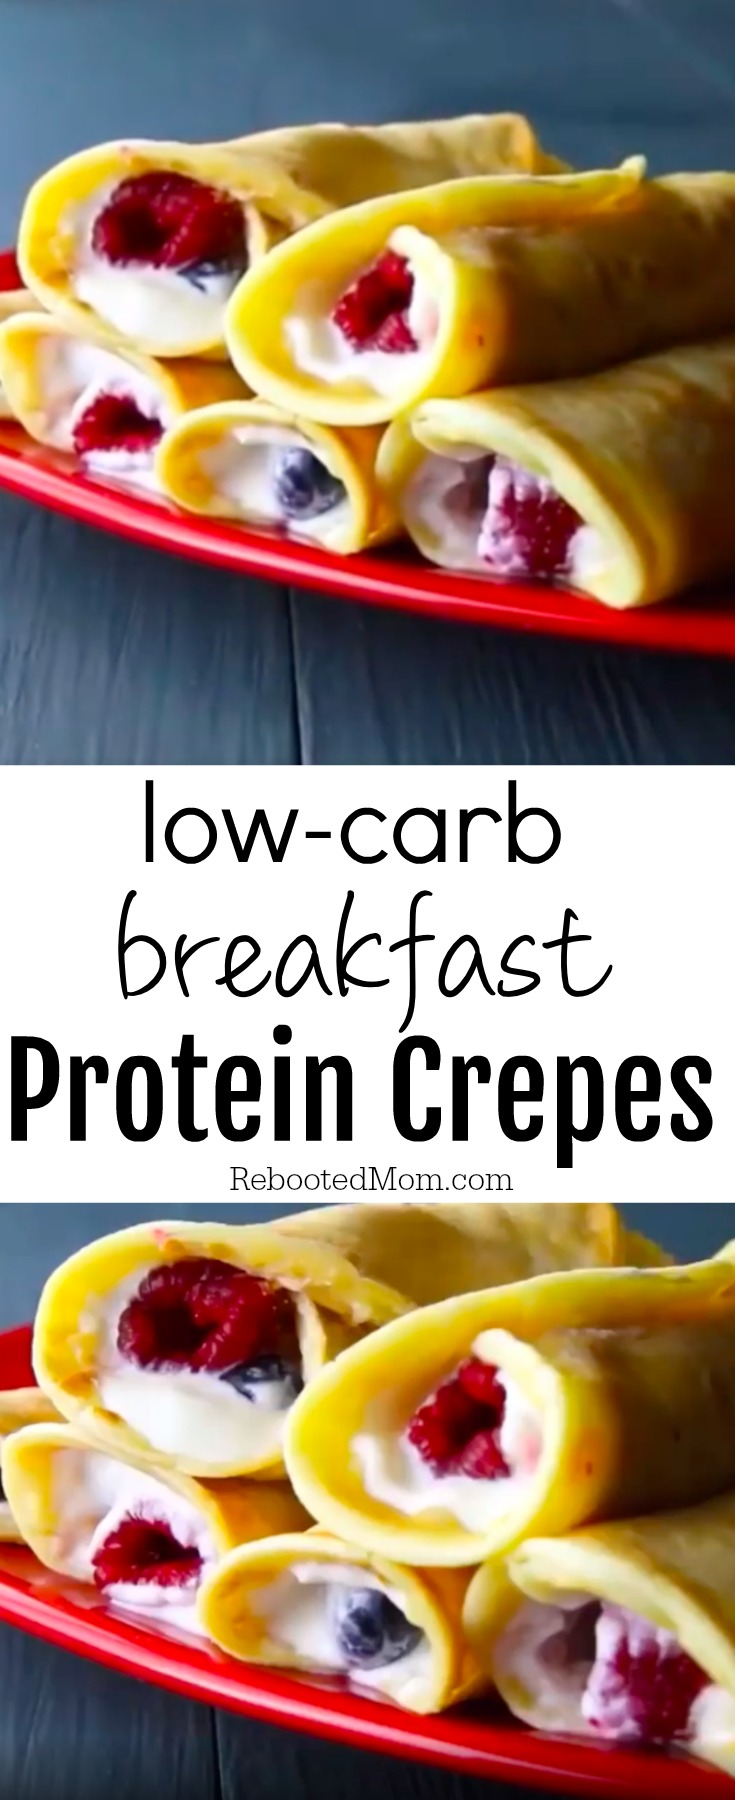 Low Carb Breakfast Protein Crepes